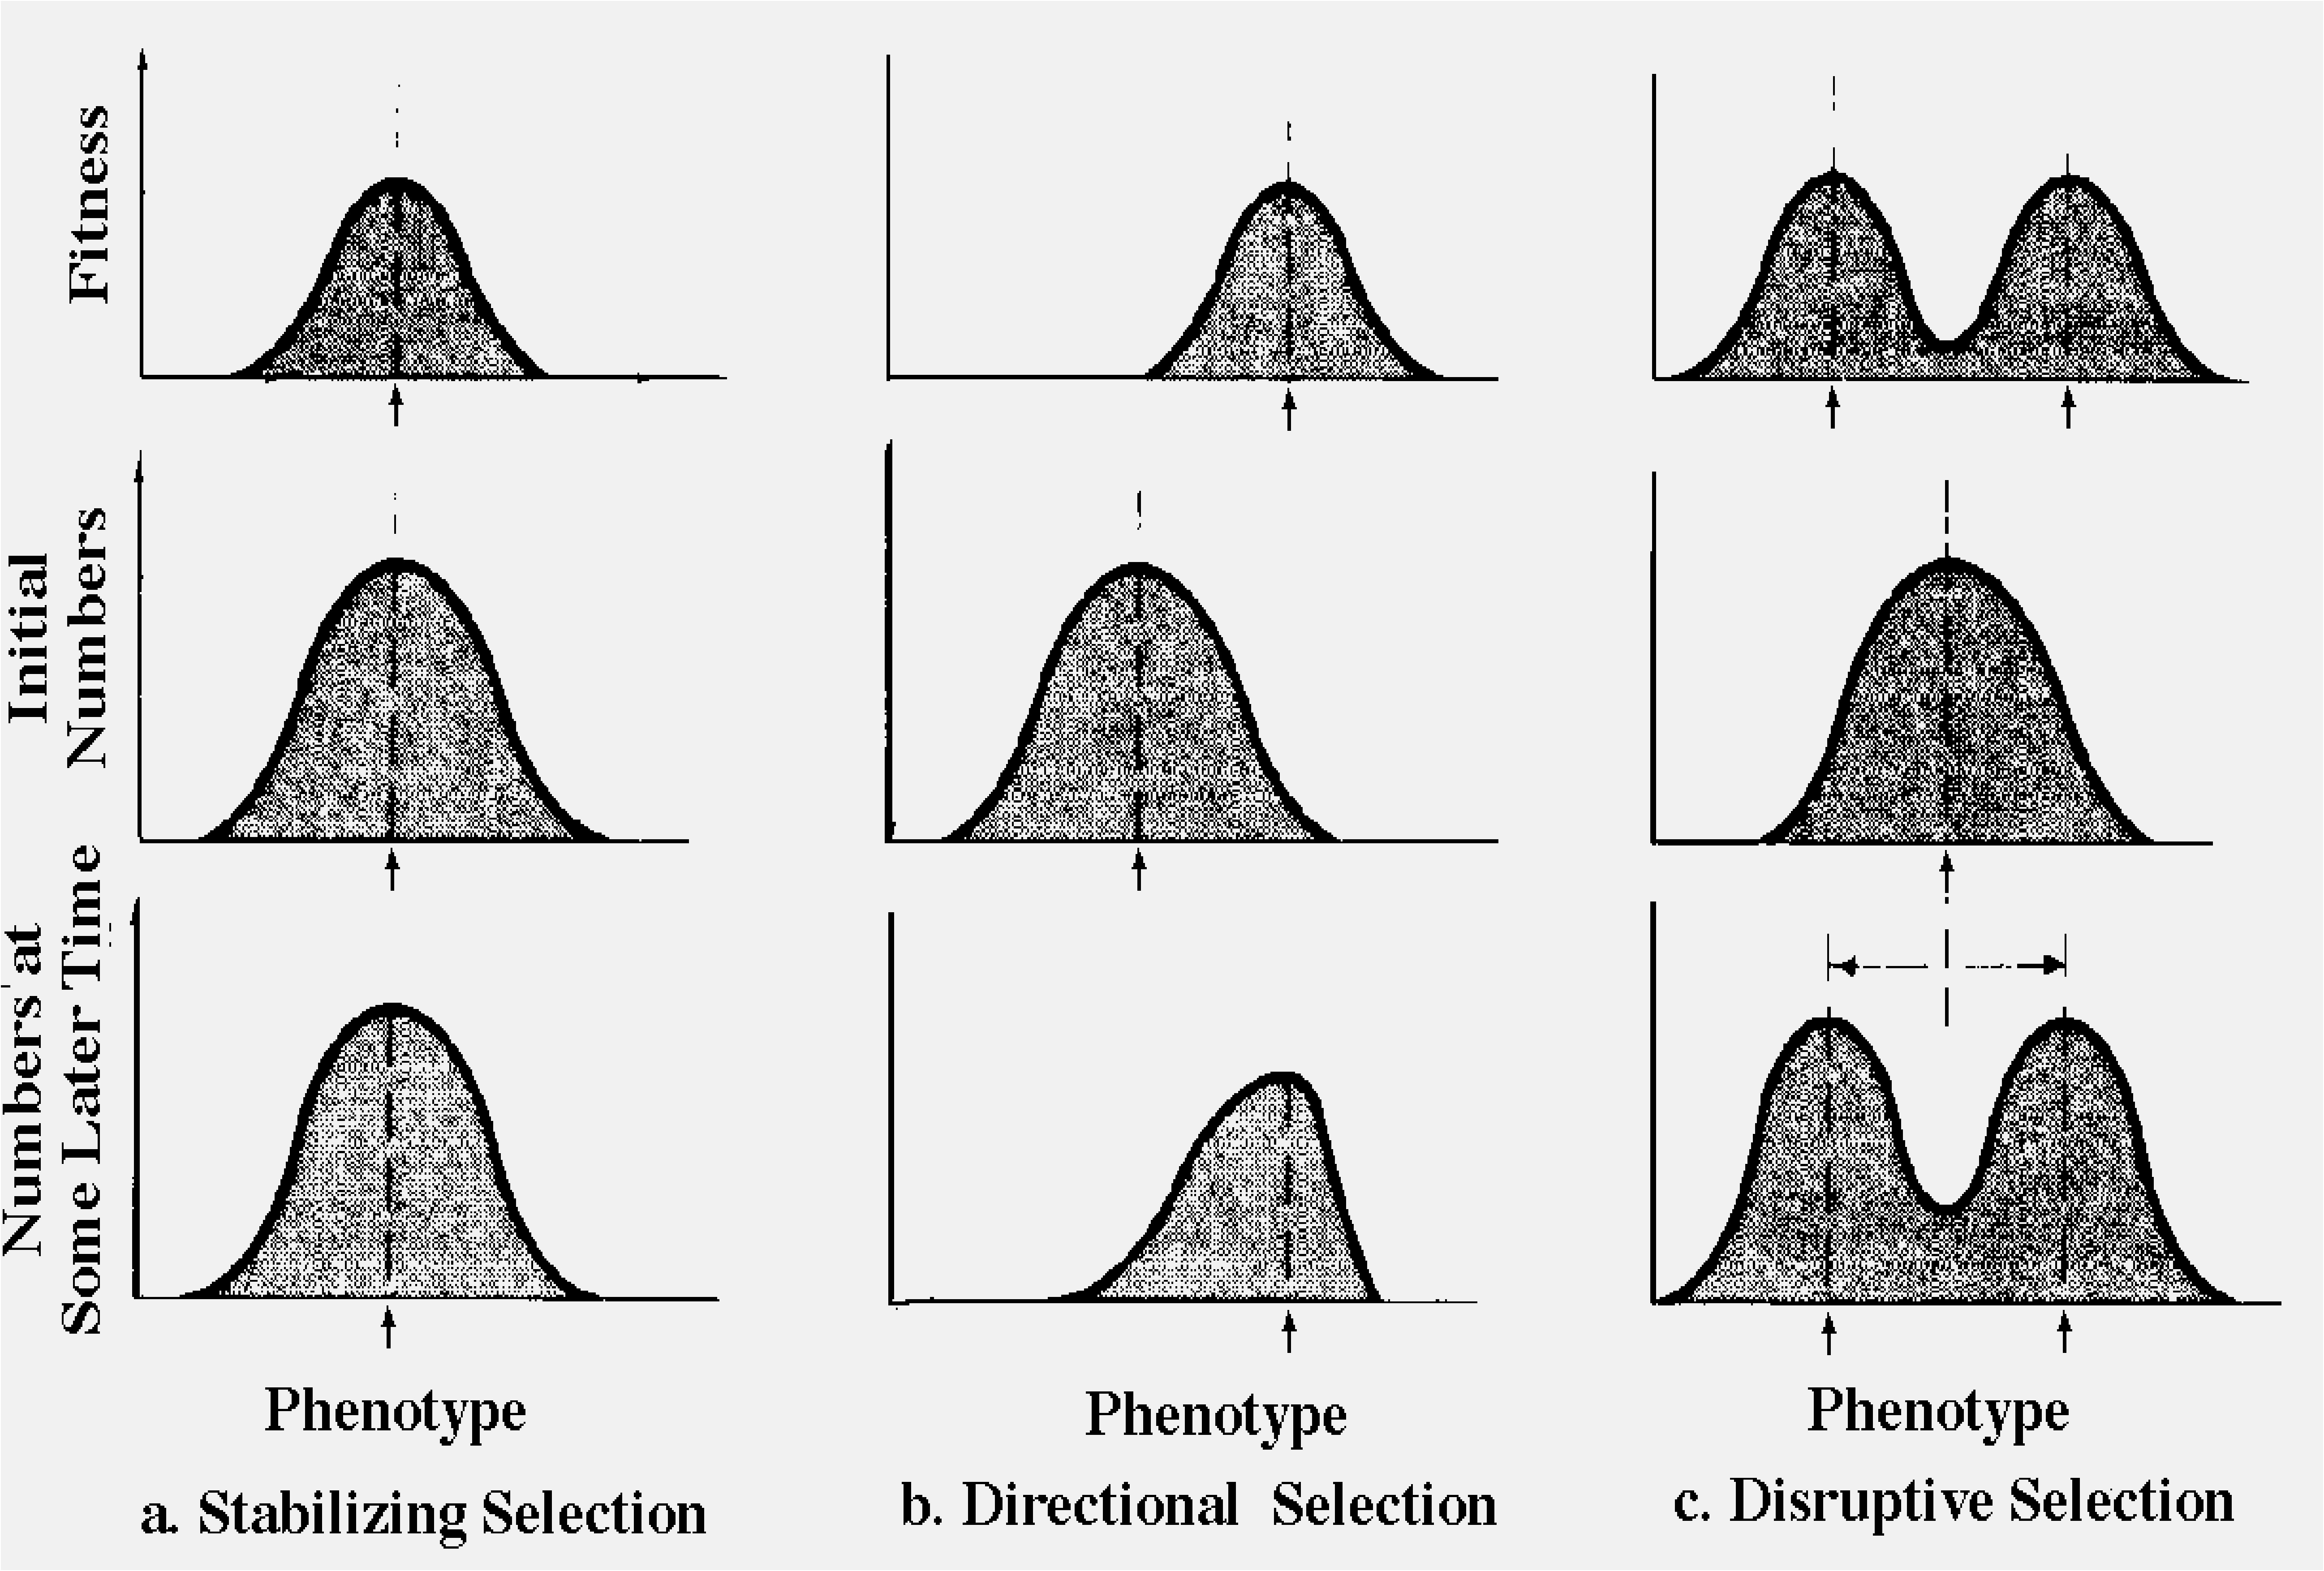 Phenotypic Selections In Nature